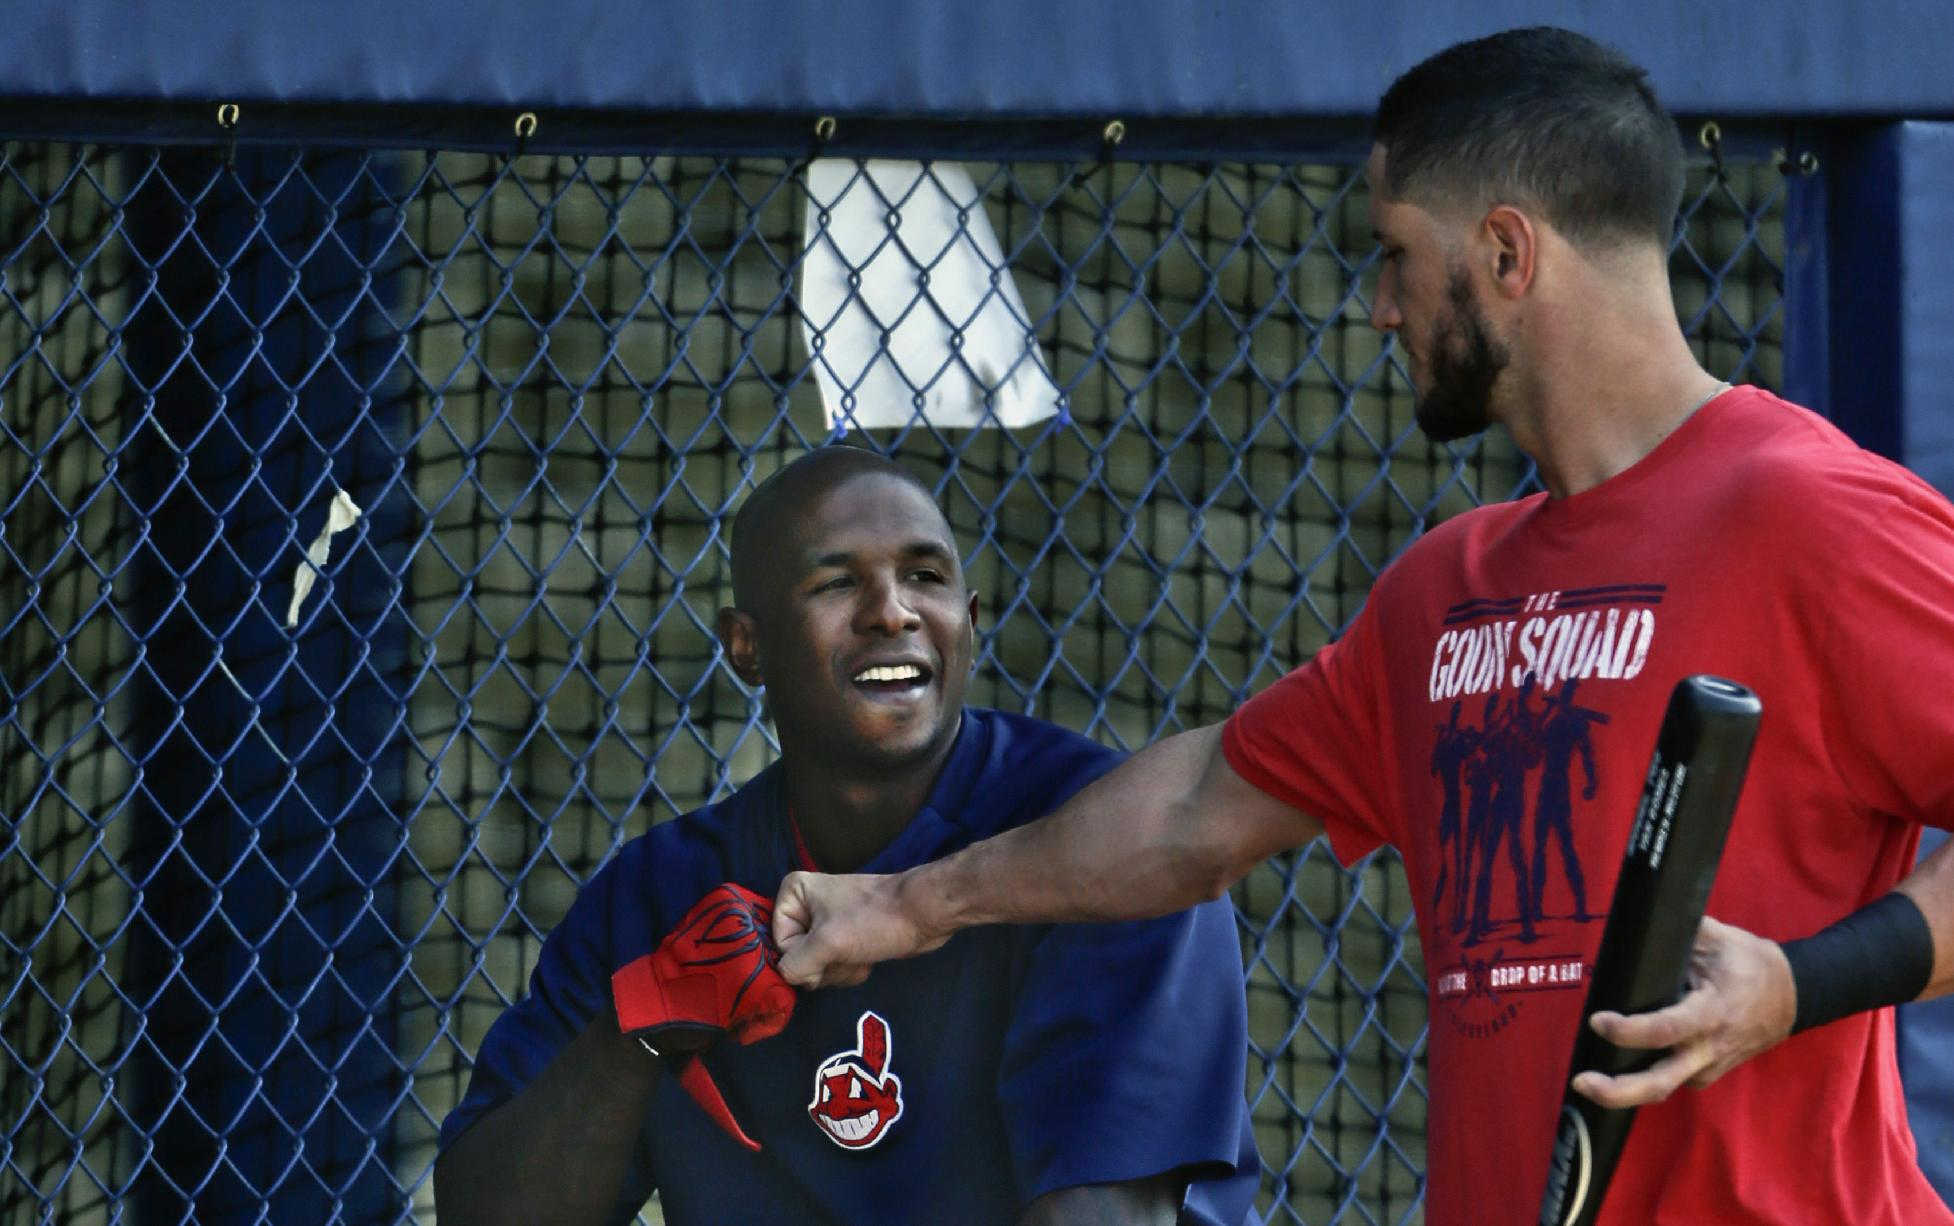 Cleveland Indians catcher Yan Gomes,  right, knocks knuckles with right fielder Nyjer Morgan before a spring exhibition baseball game on Friday, March 28, 2014, in San Diego